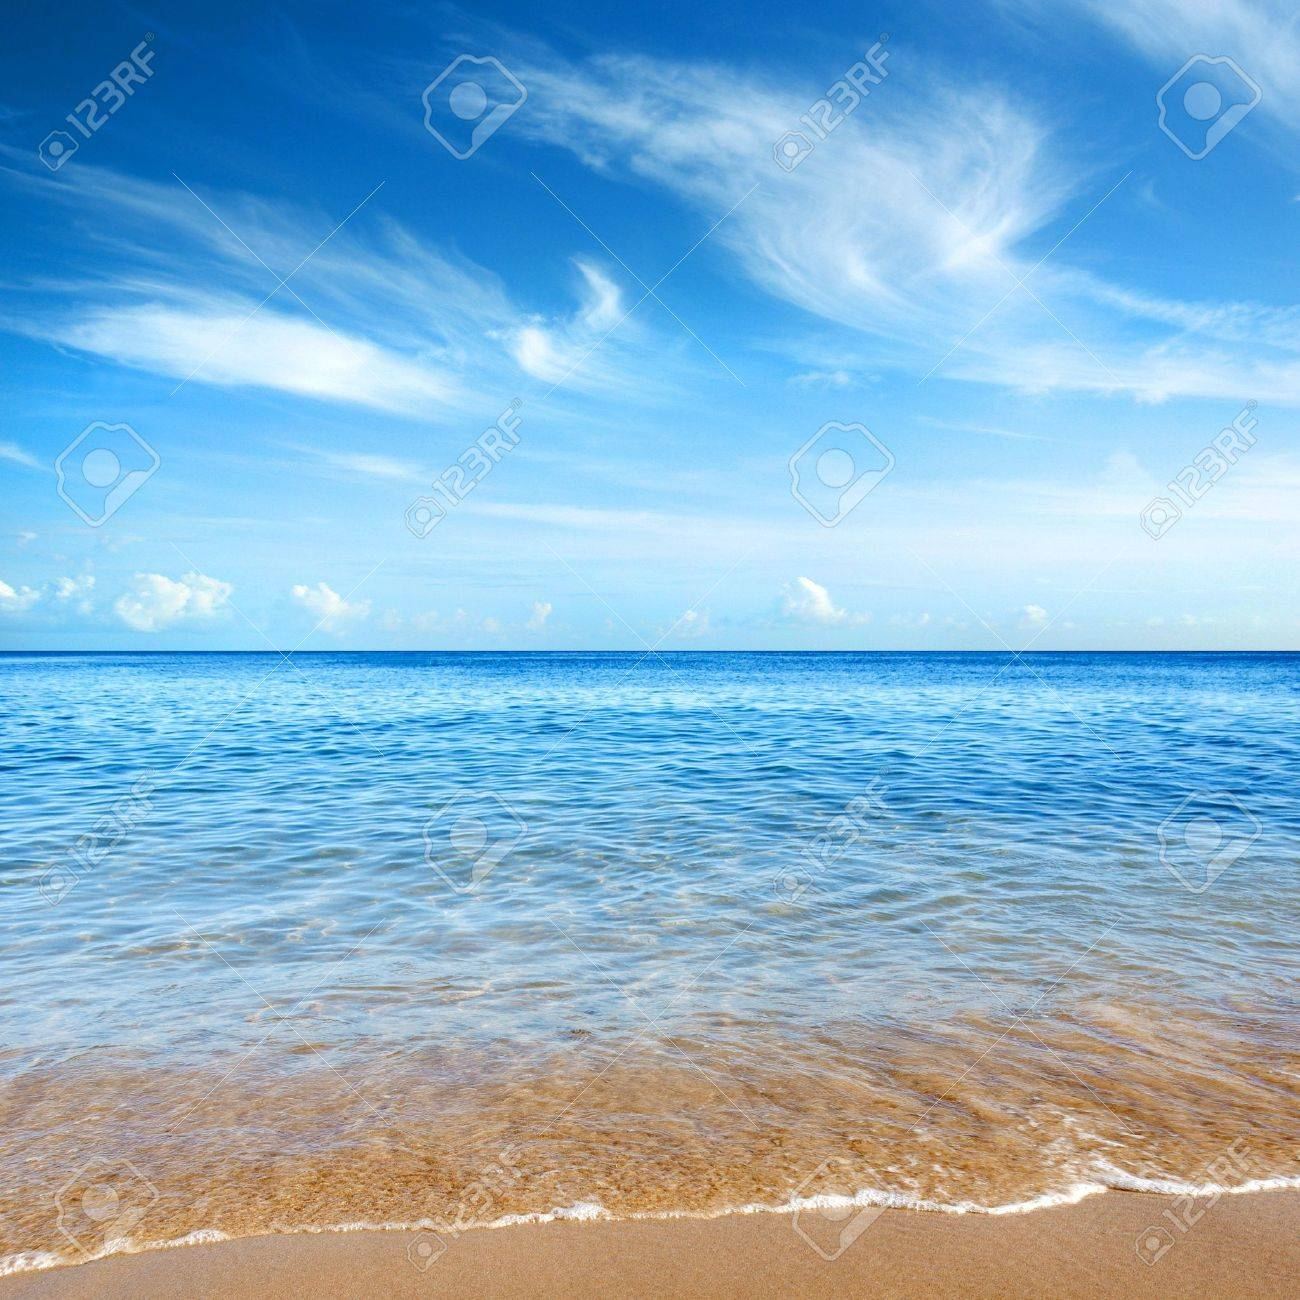 Beautiful seashore with calm cristal clear water Stock Photo - 3280858